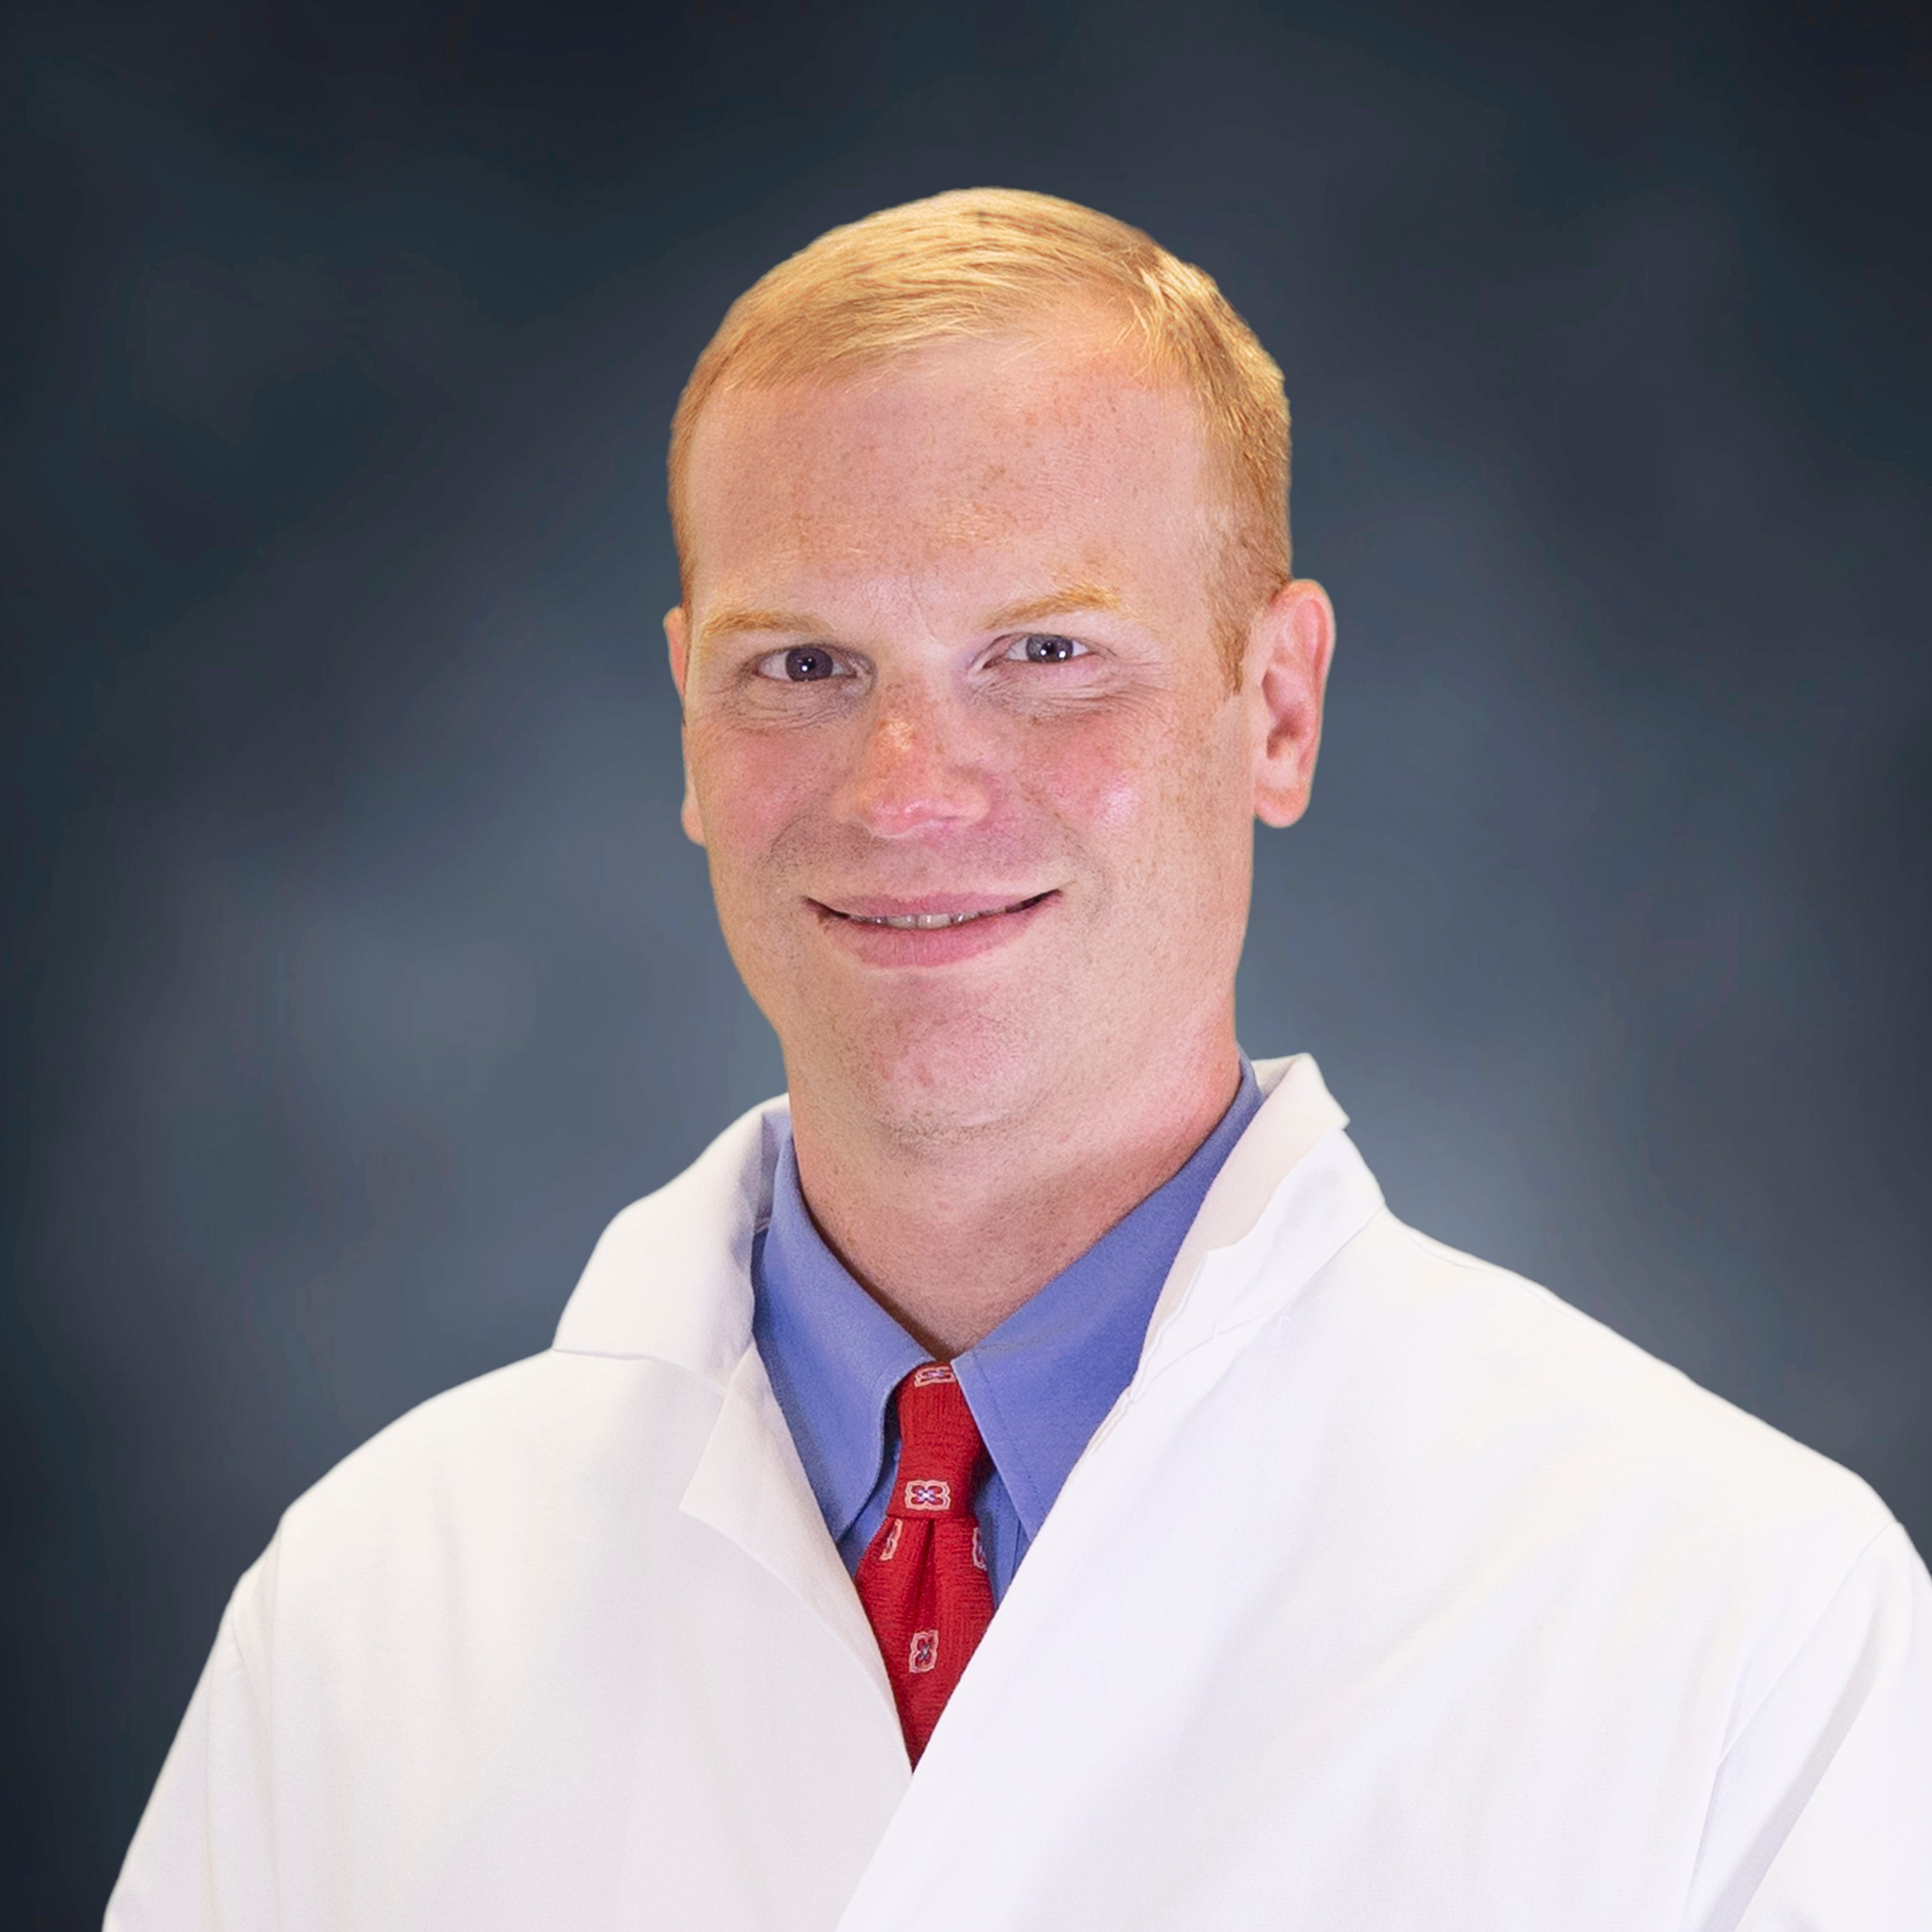 Rheumatologist Dr. Zachary Pruhs joins GRMC